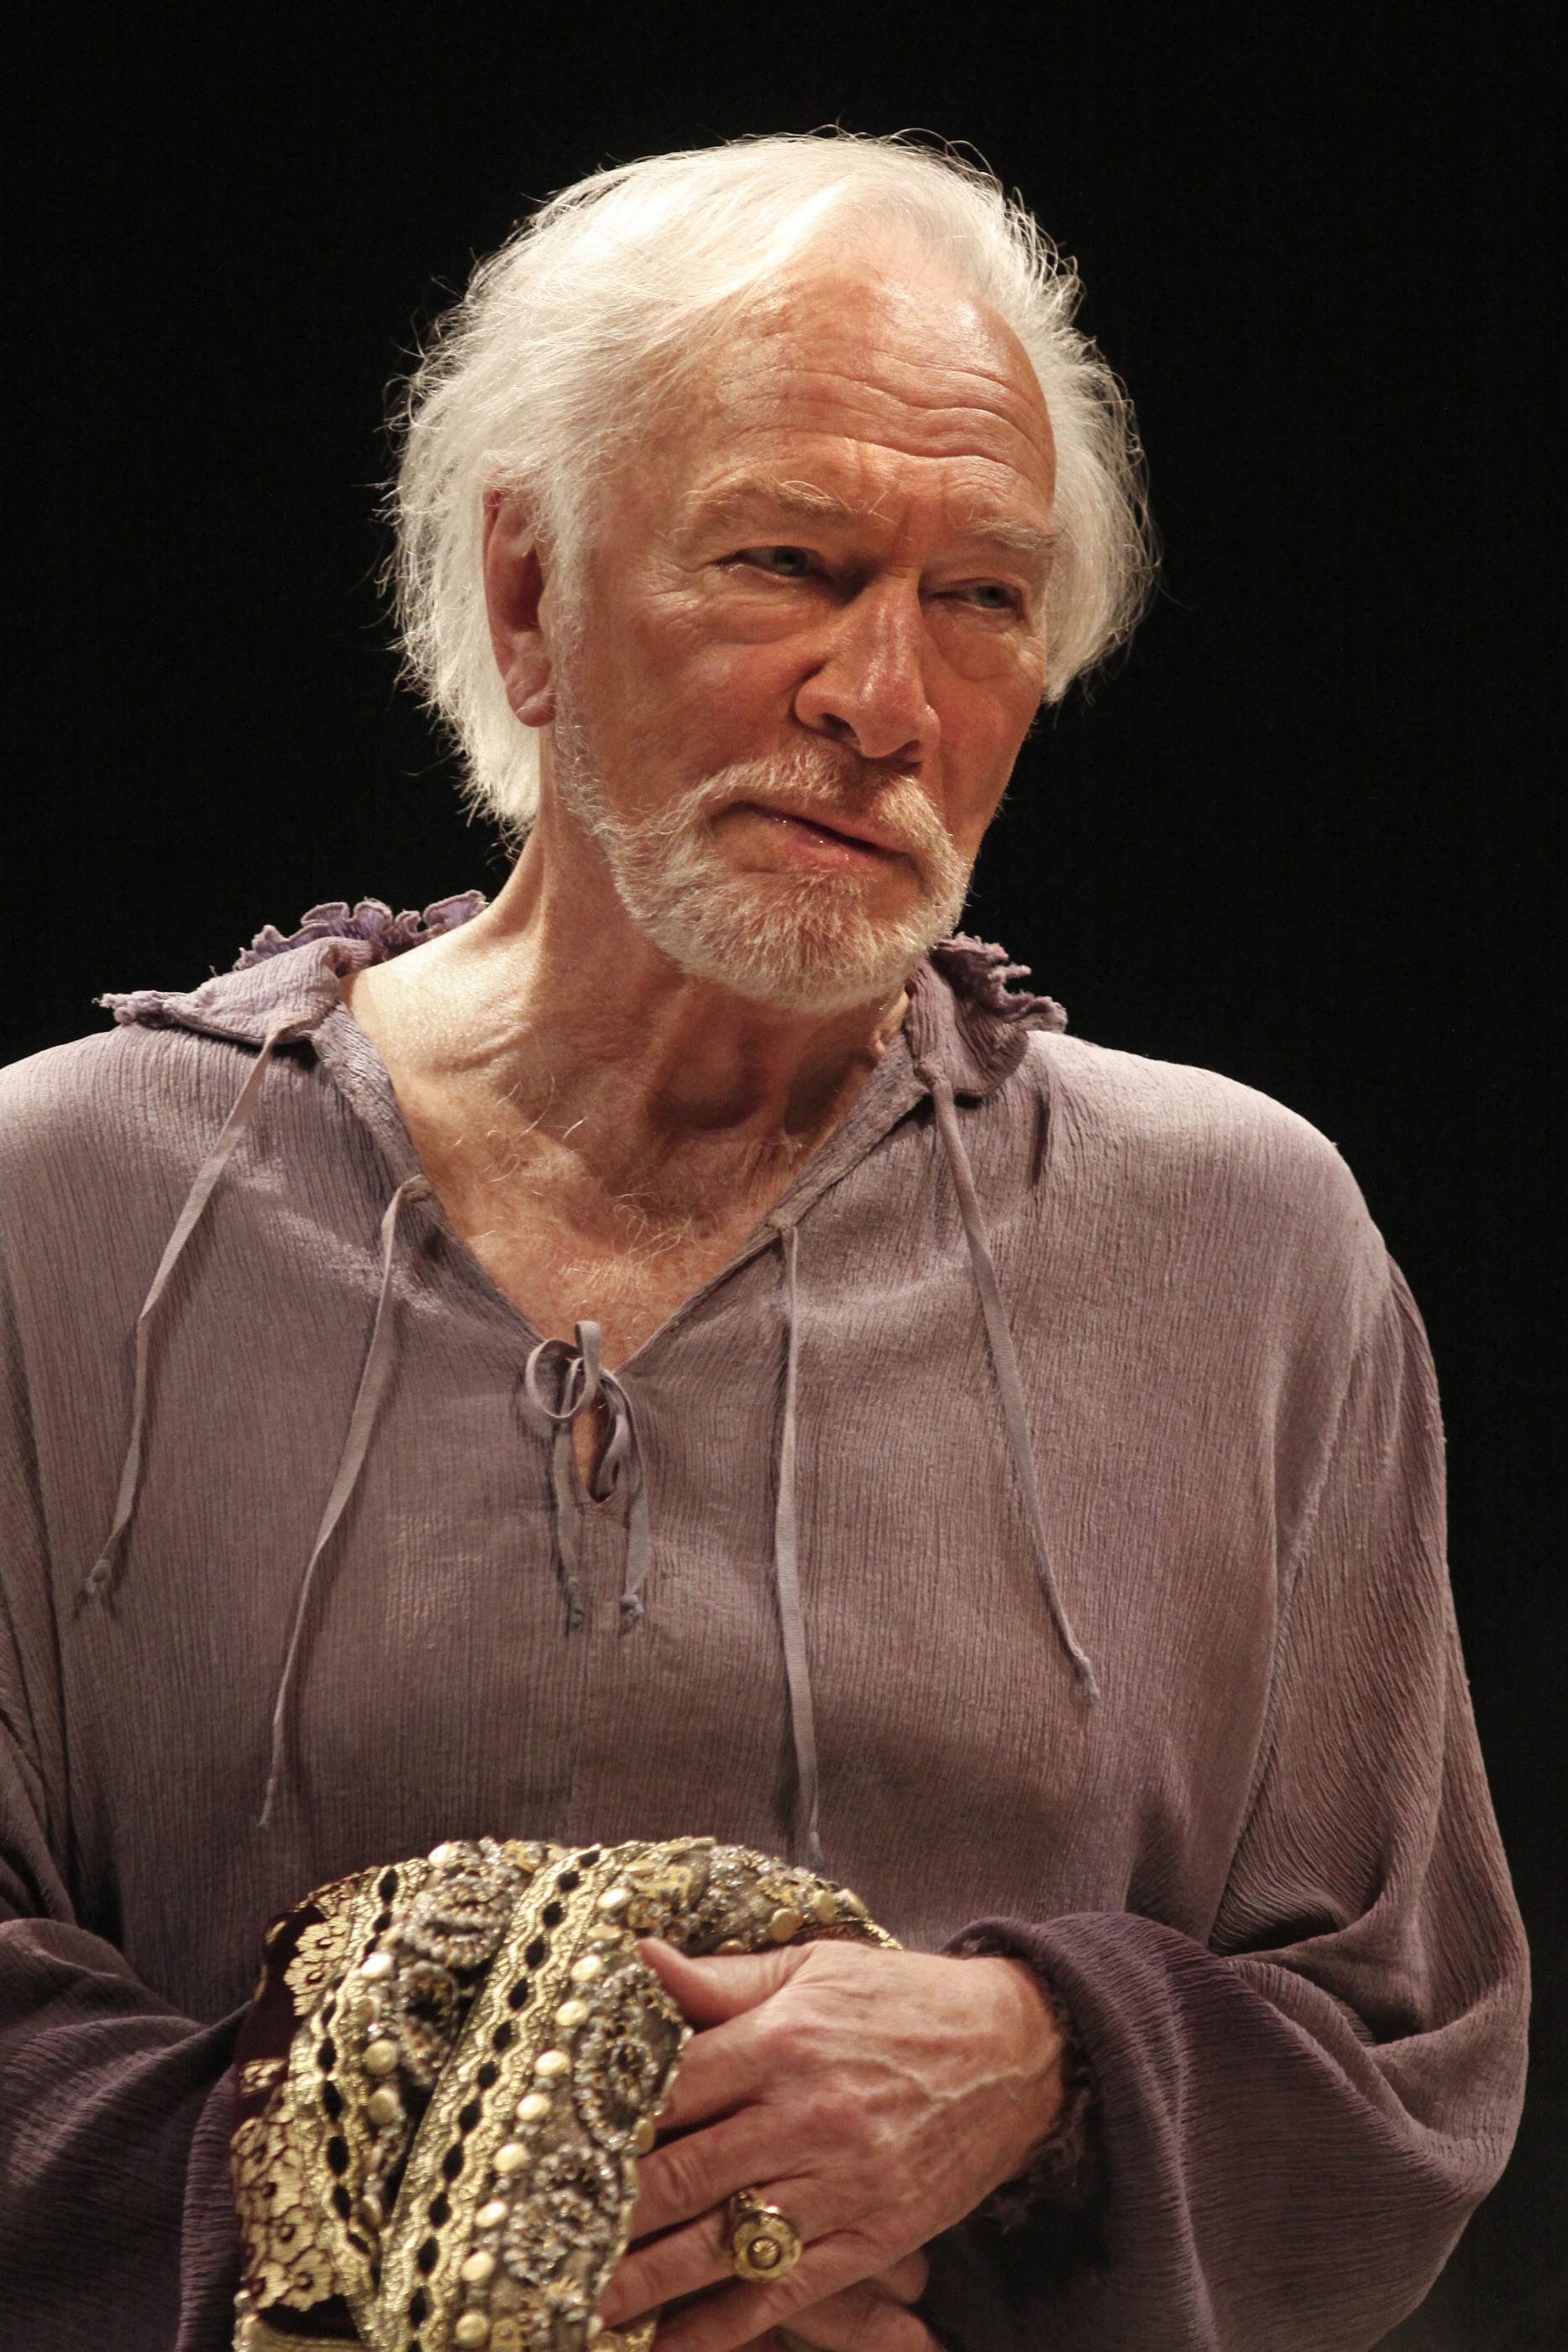 about prospero Focussing on act 1, scene 2 of the tempest, john gordon analyses the characters of ariel and prospero through the frame of magic and power.